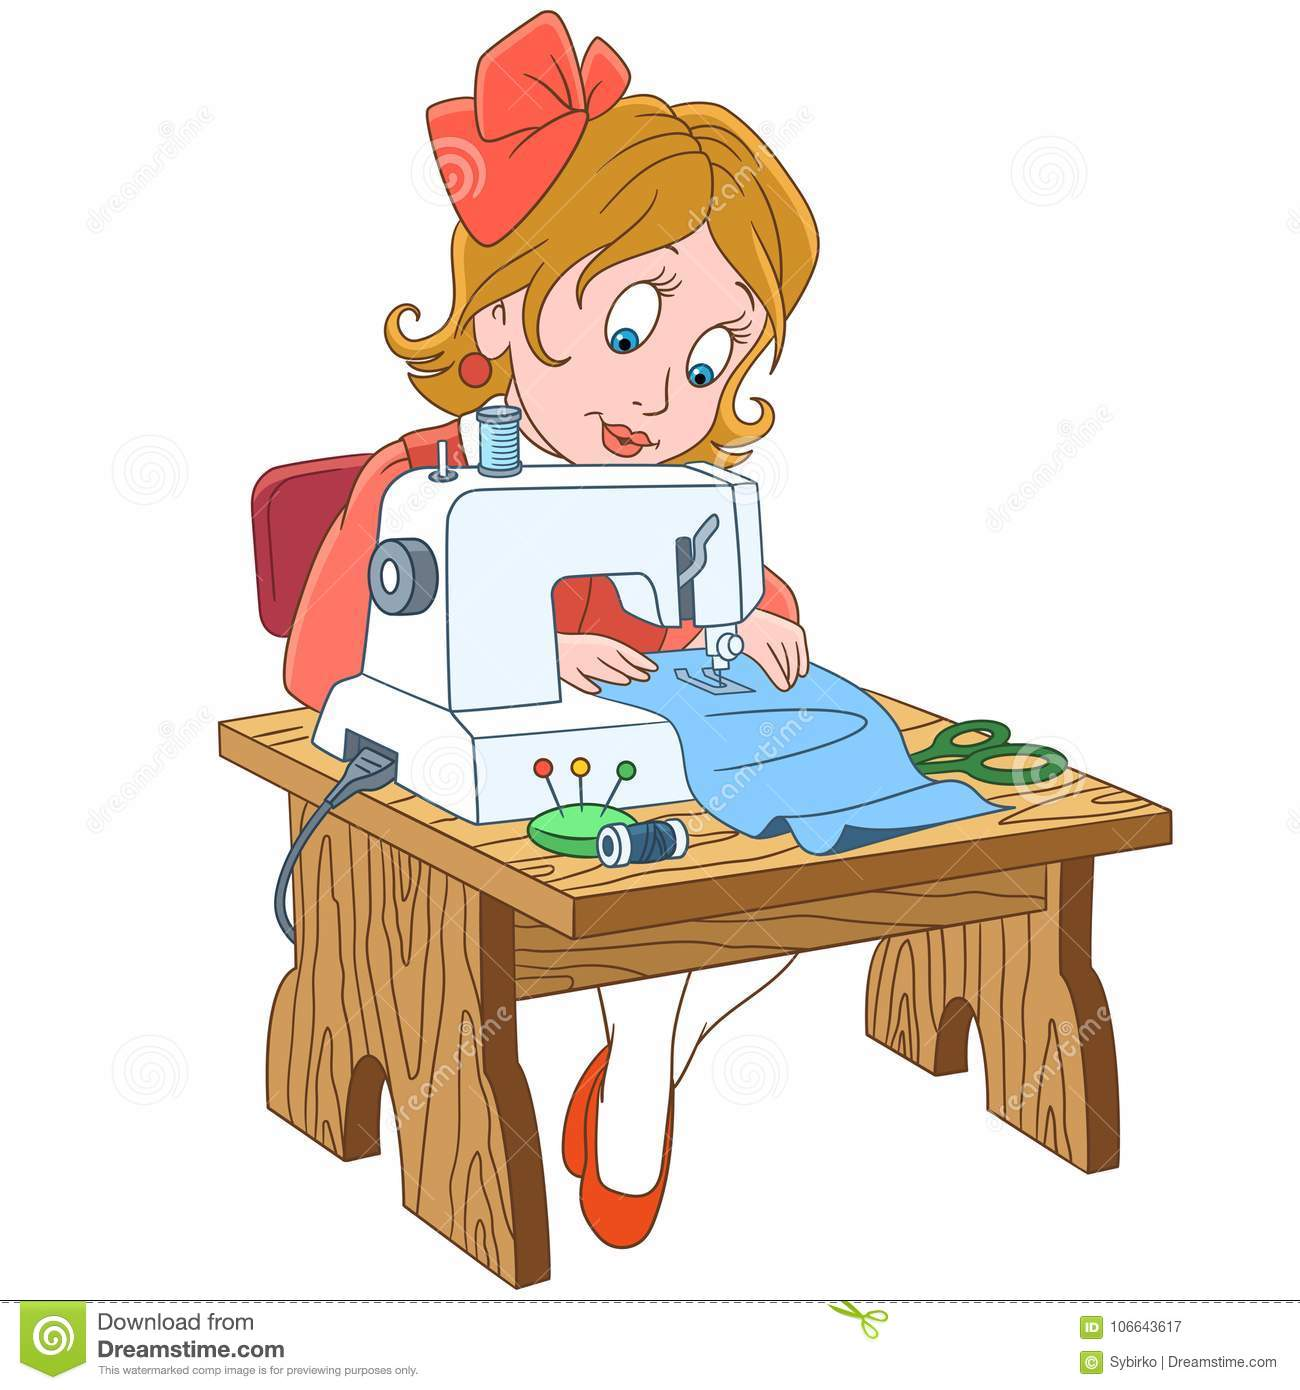 Cartoon seamstress working on electric sewing machine